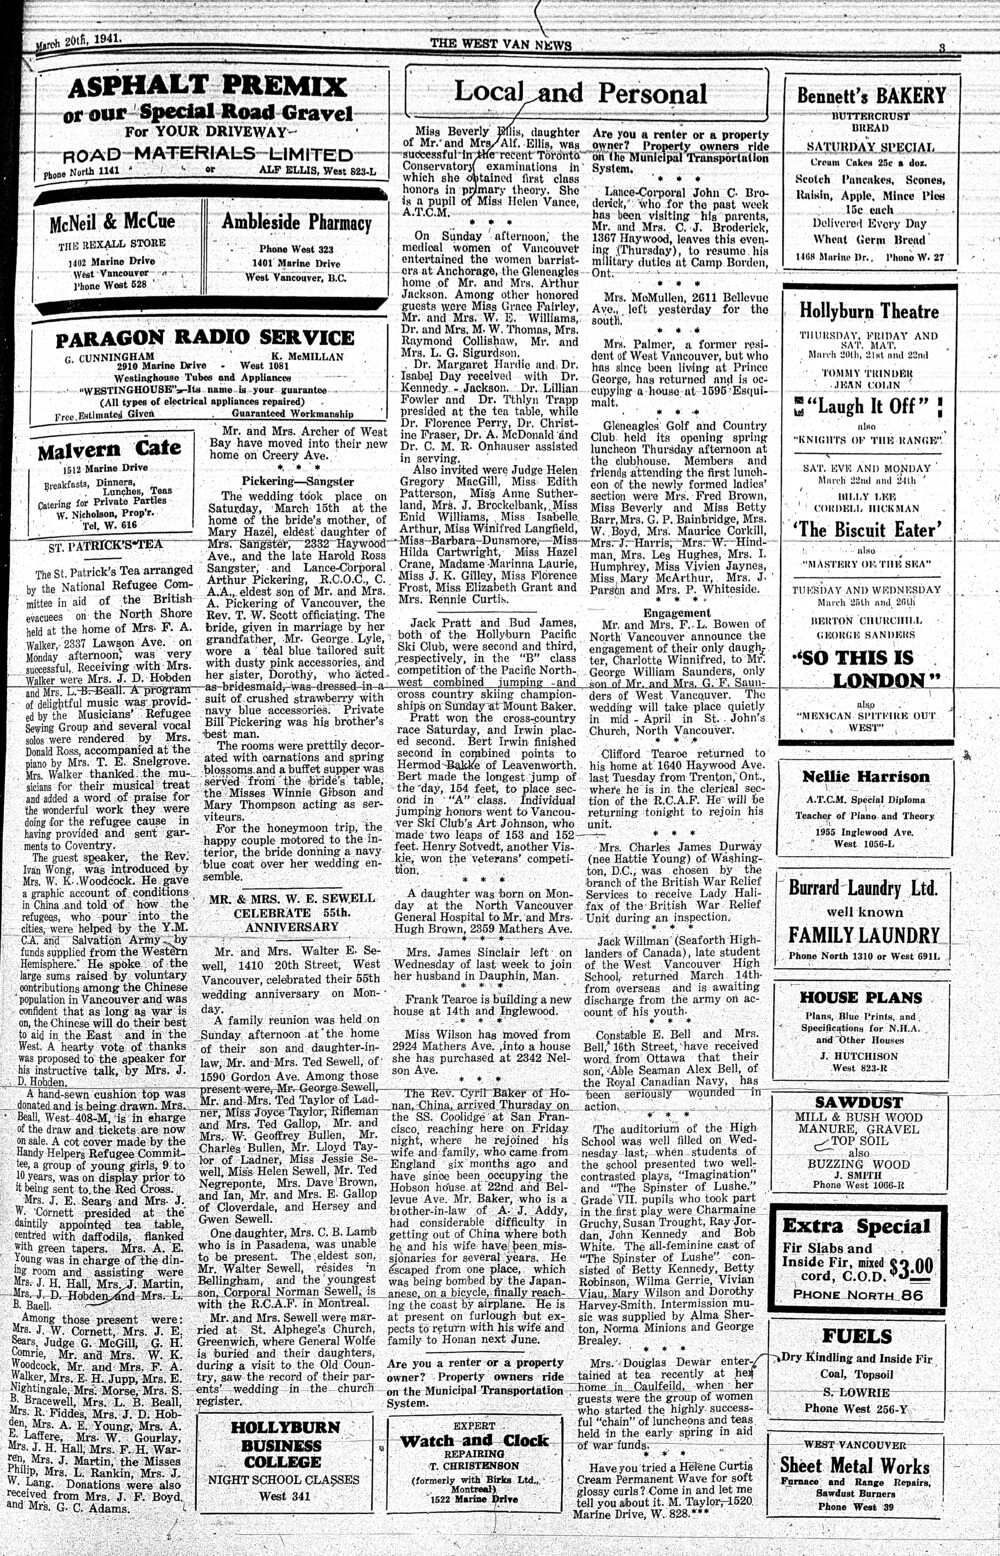 West Van. News (West Vancouver), 20 Mar 1941